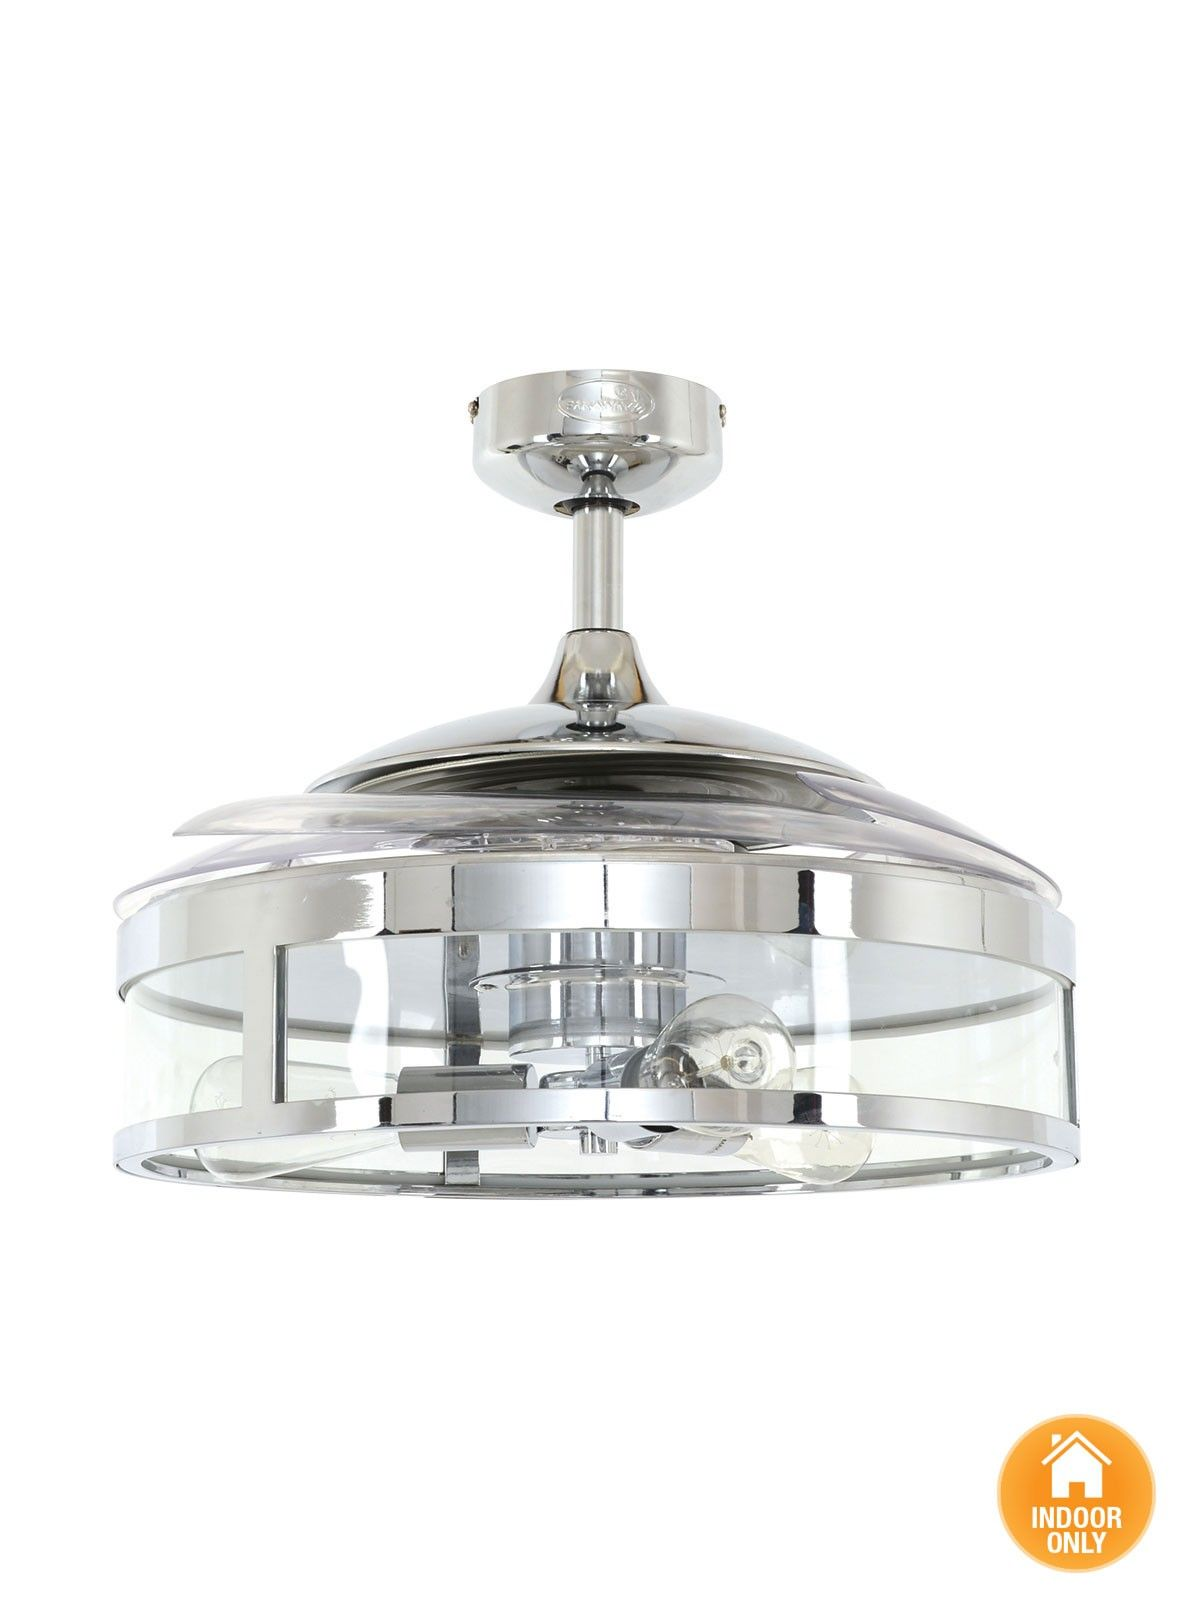 Fanaway Classic Chrome Ceiling Fan With Clear Retractable Blades And Light